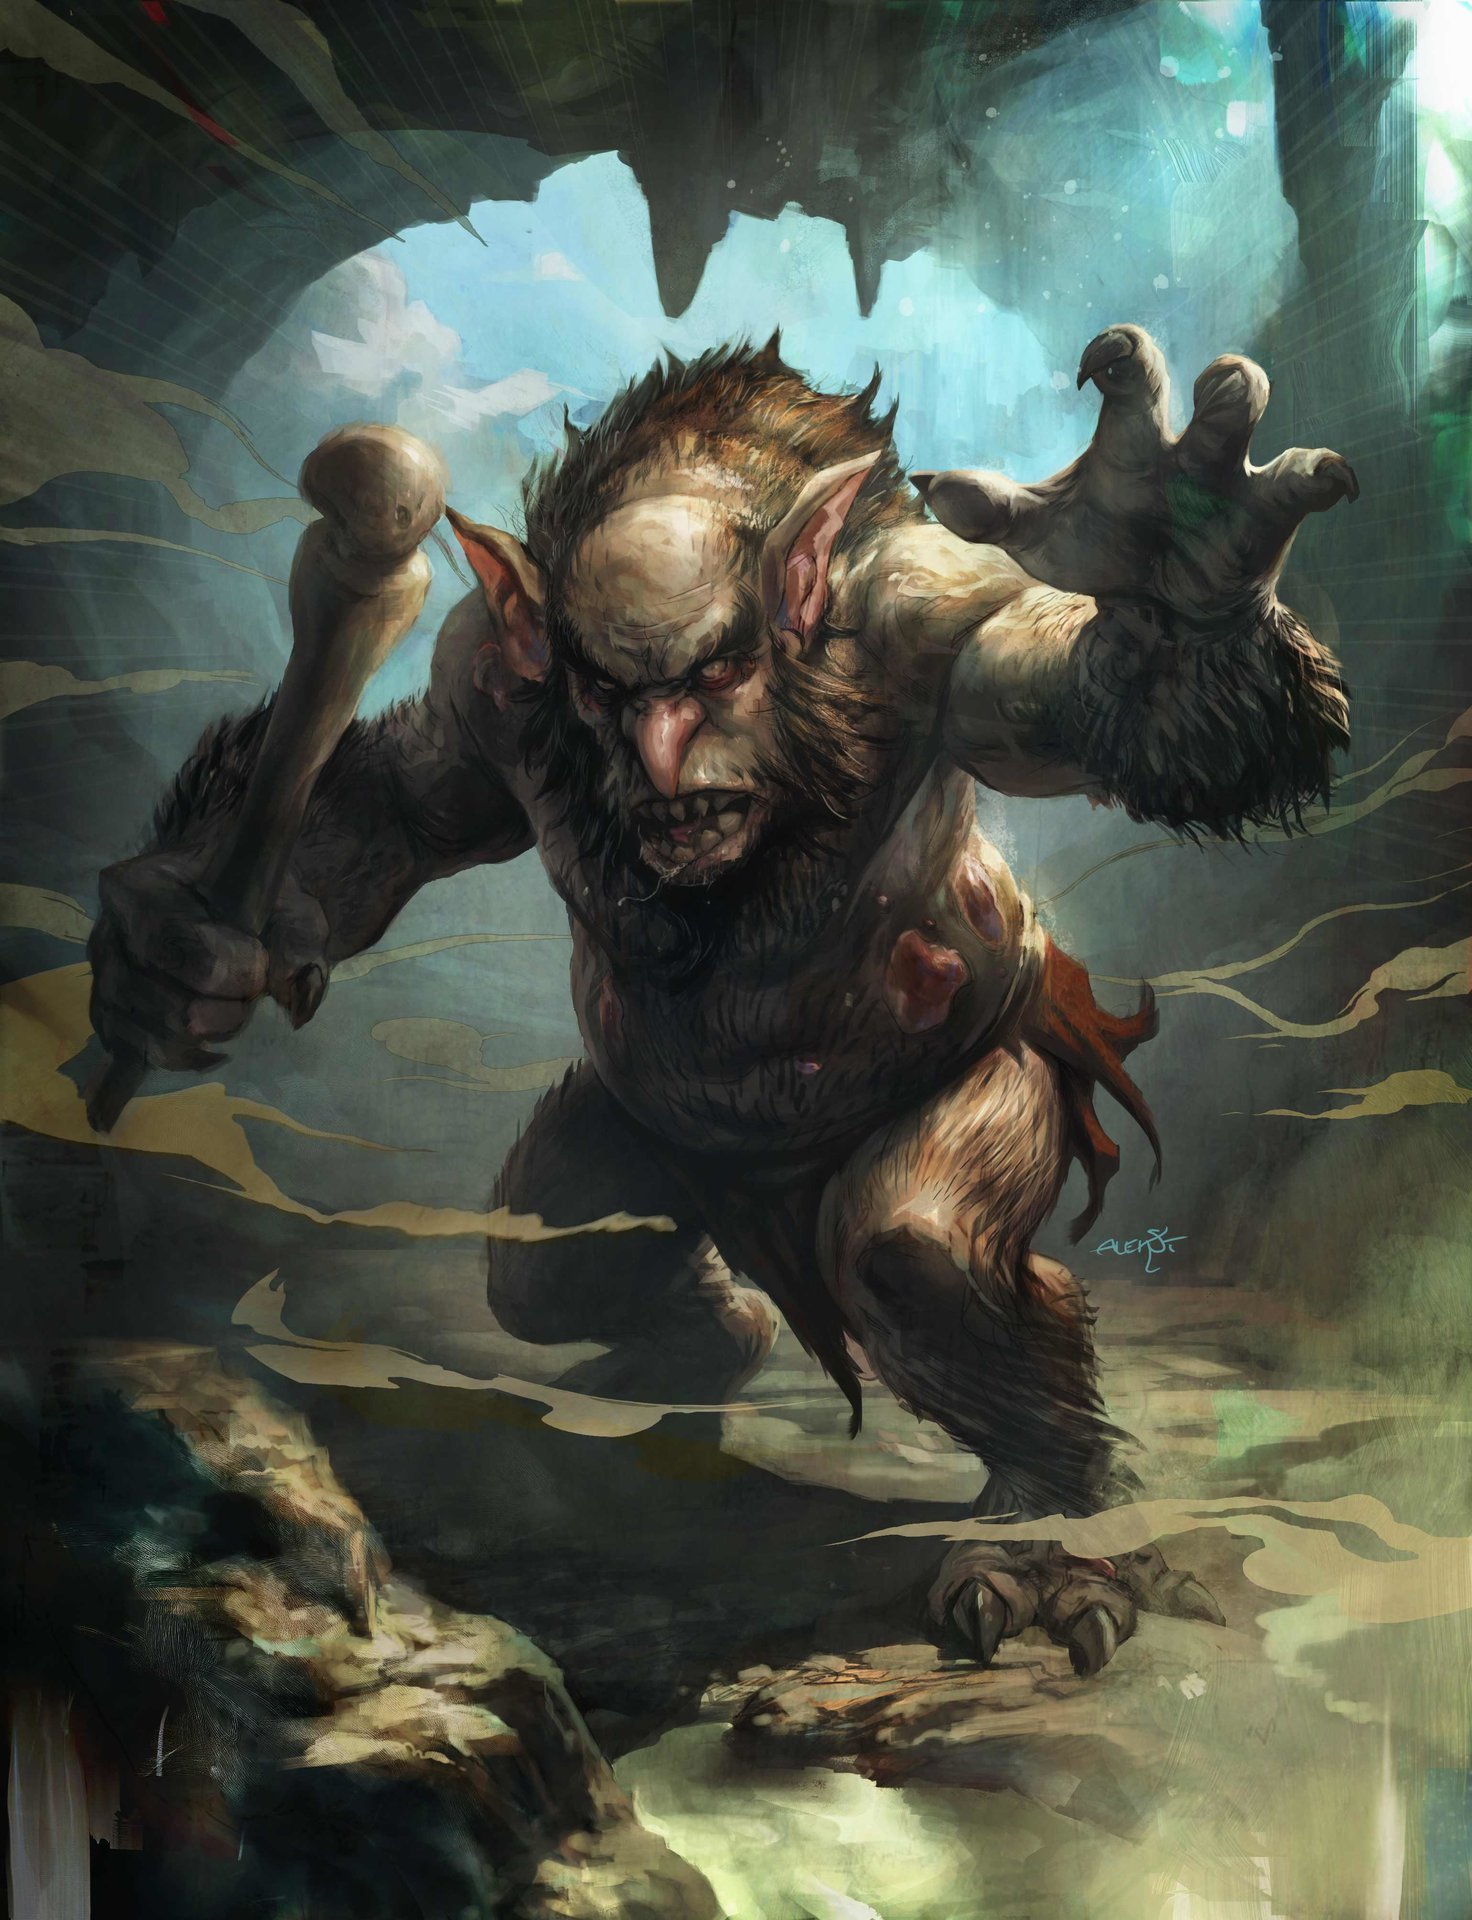 Aleksi Briclot illustration Blizzard Hearthstone Burly Rockjaw Trogg